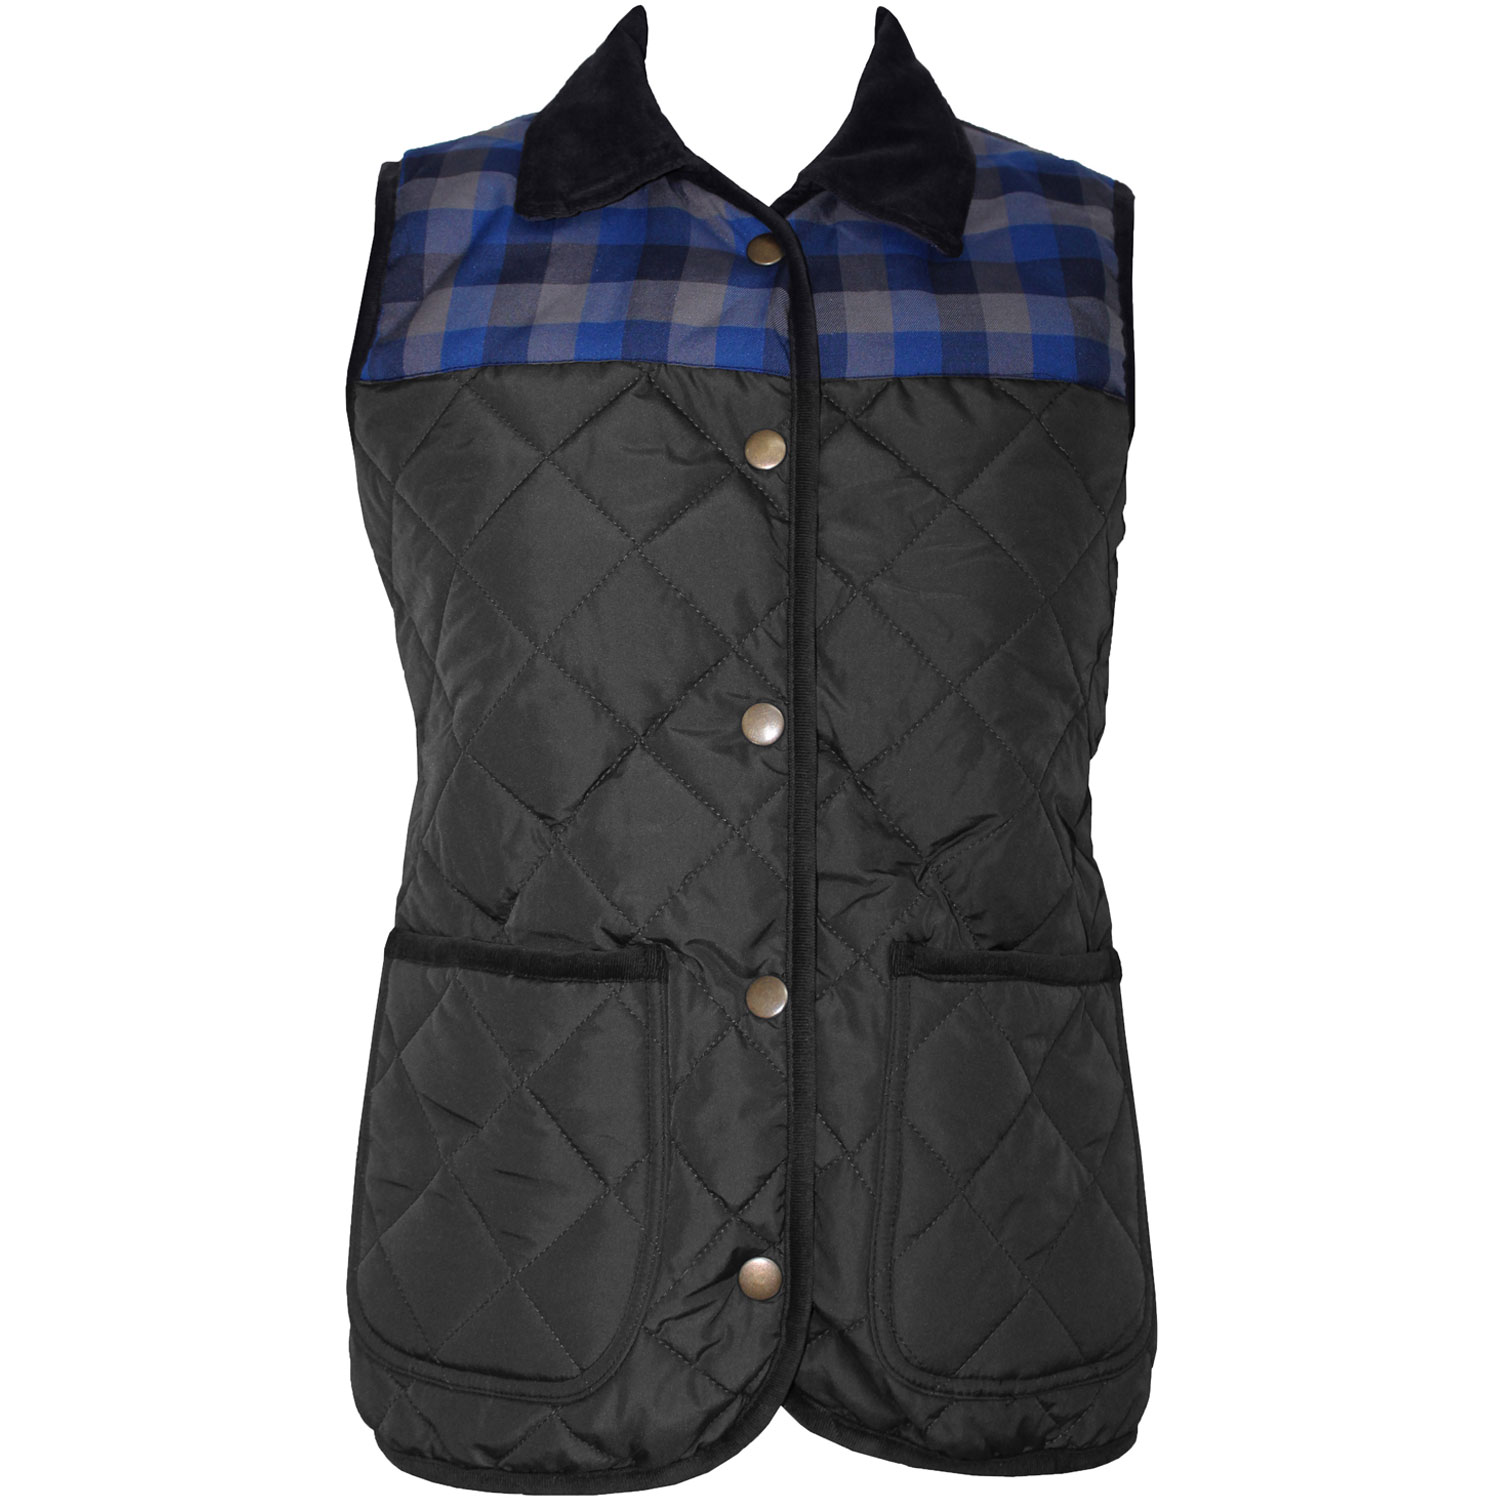 Shop from a huge range of women's gilets and vests, including down and fleece vests, from leading countrywear brands. Free USA shipping available.